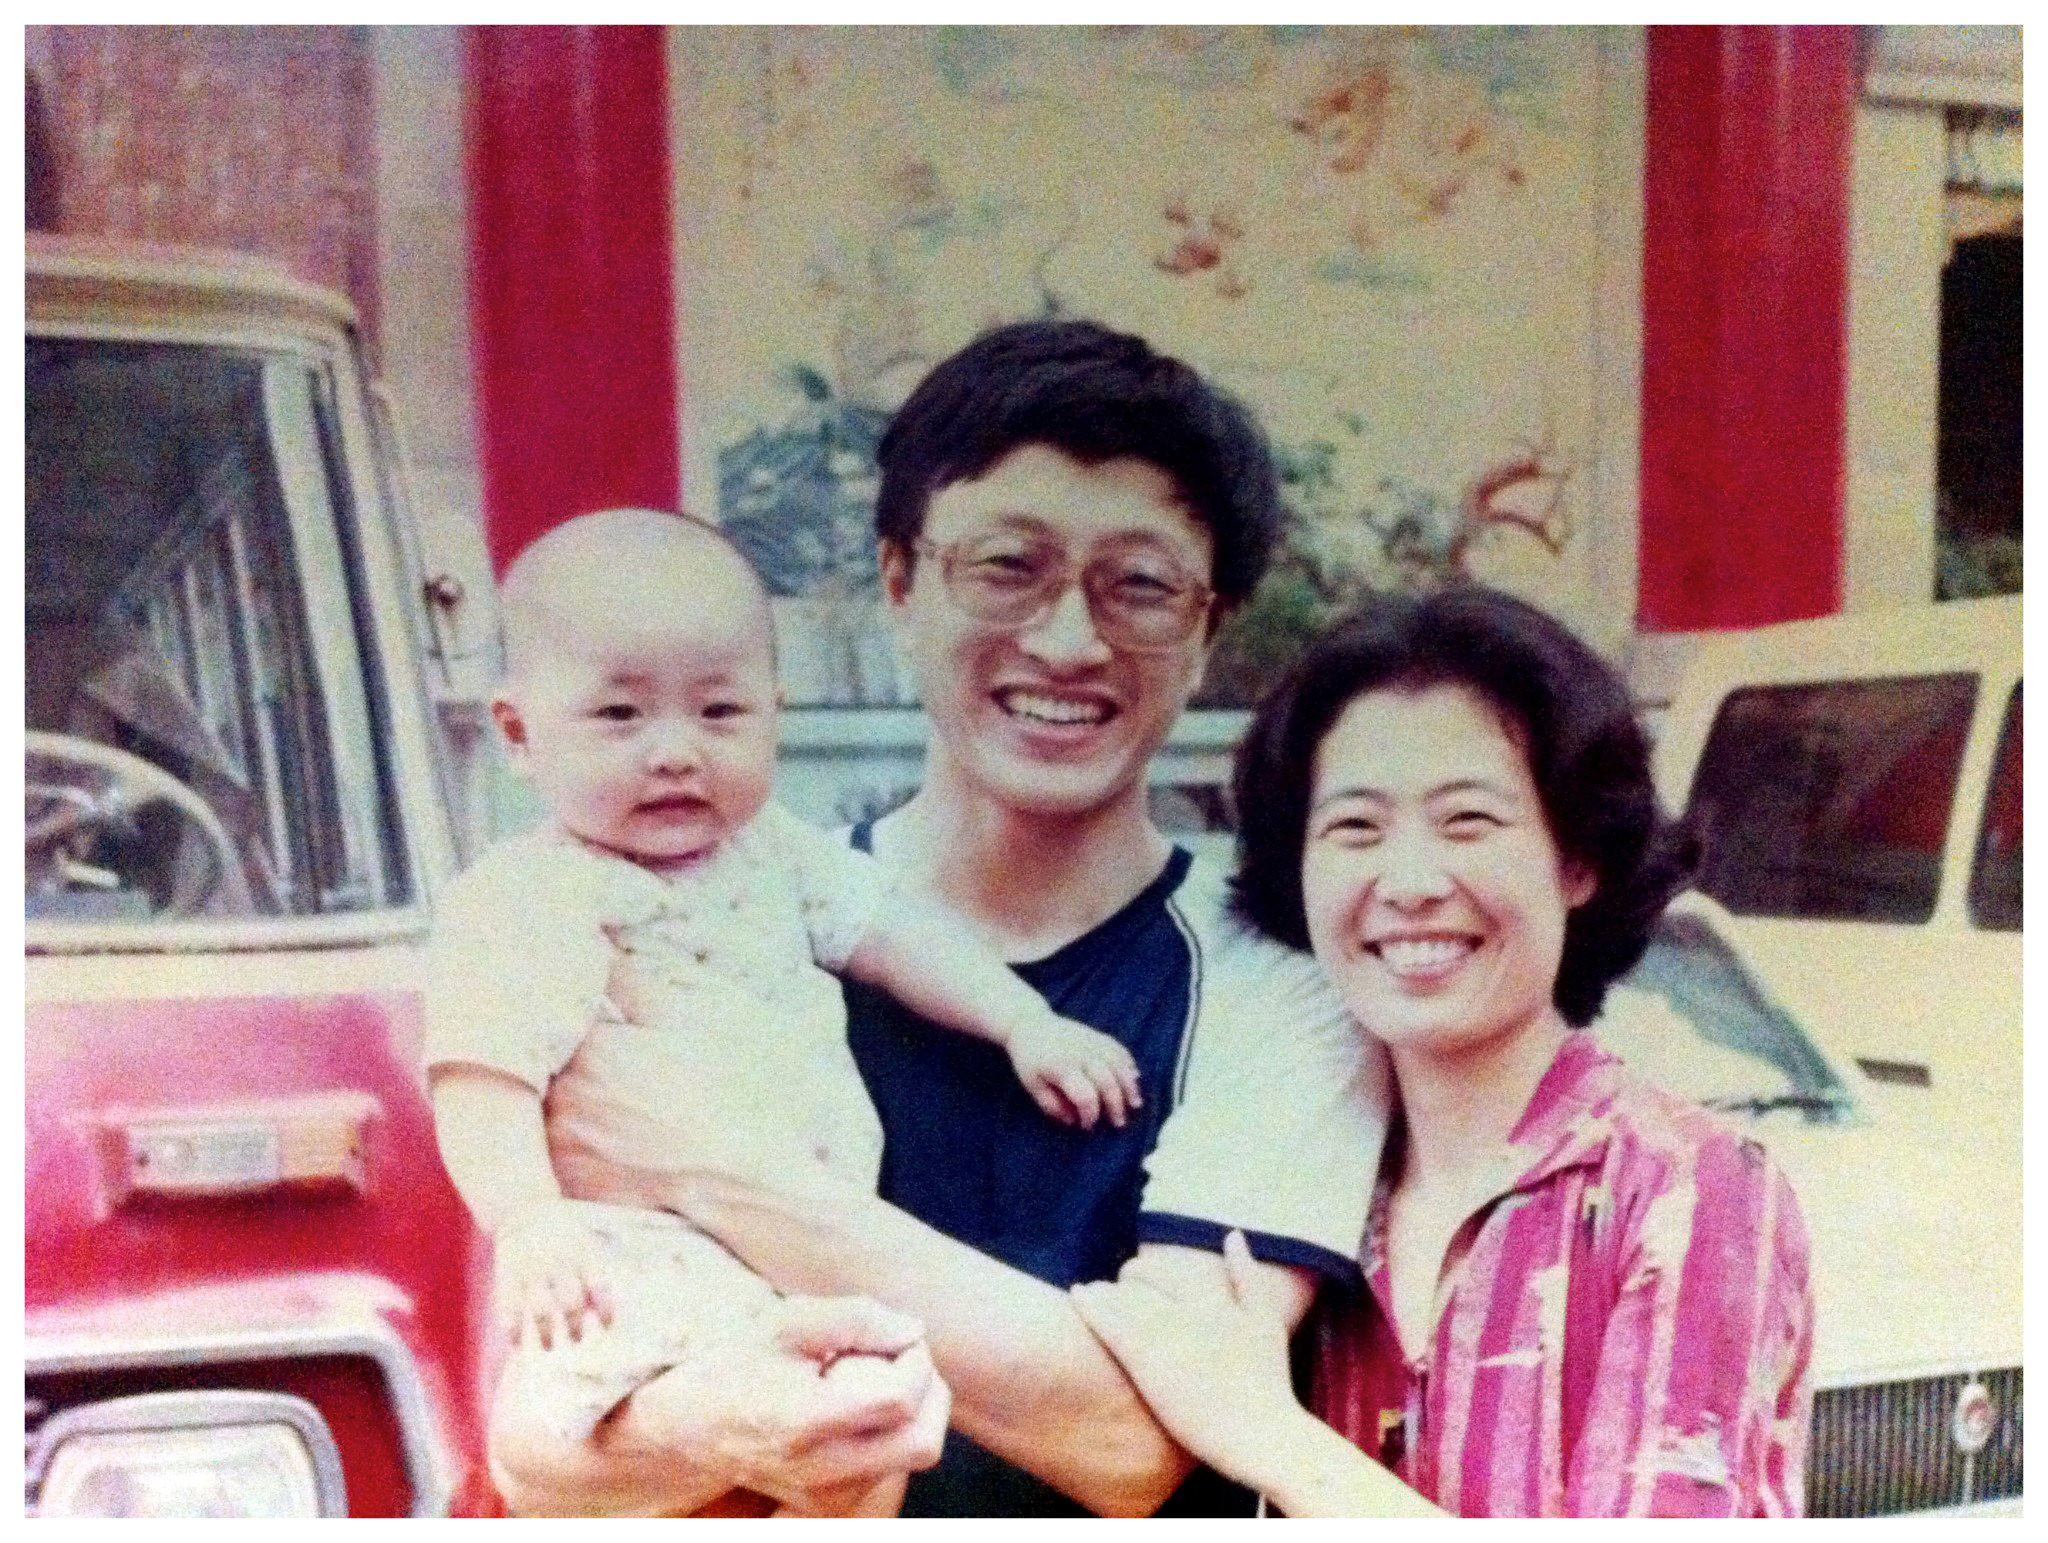 1987: a year before my father left for the US; my mother and I followed a year later in 1989